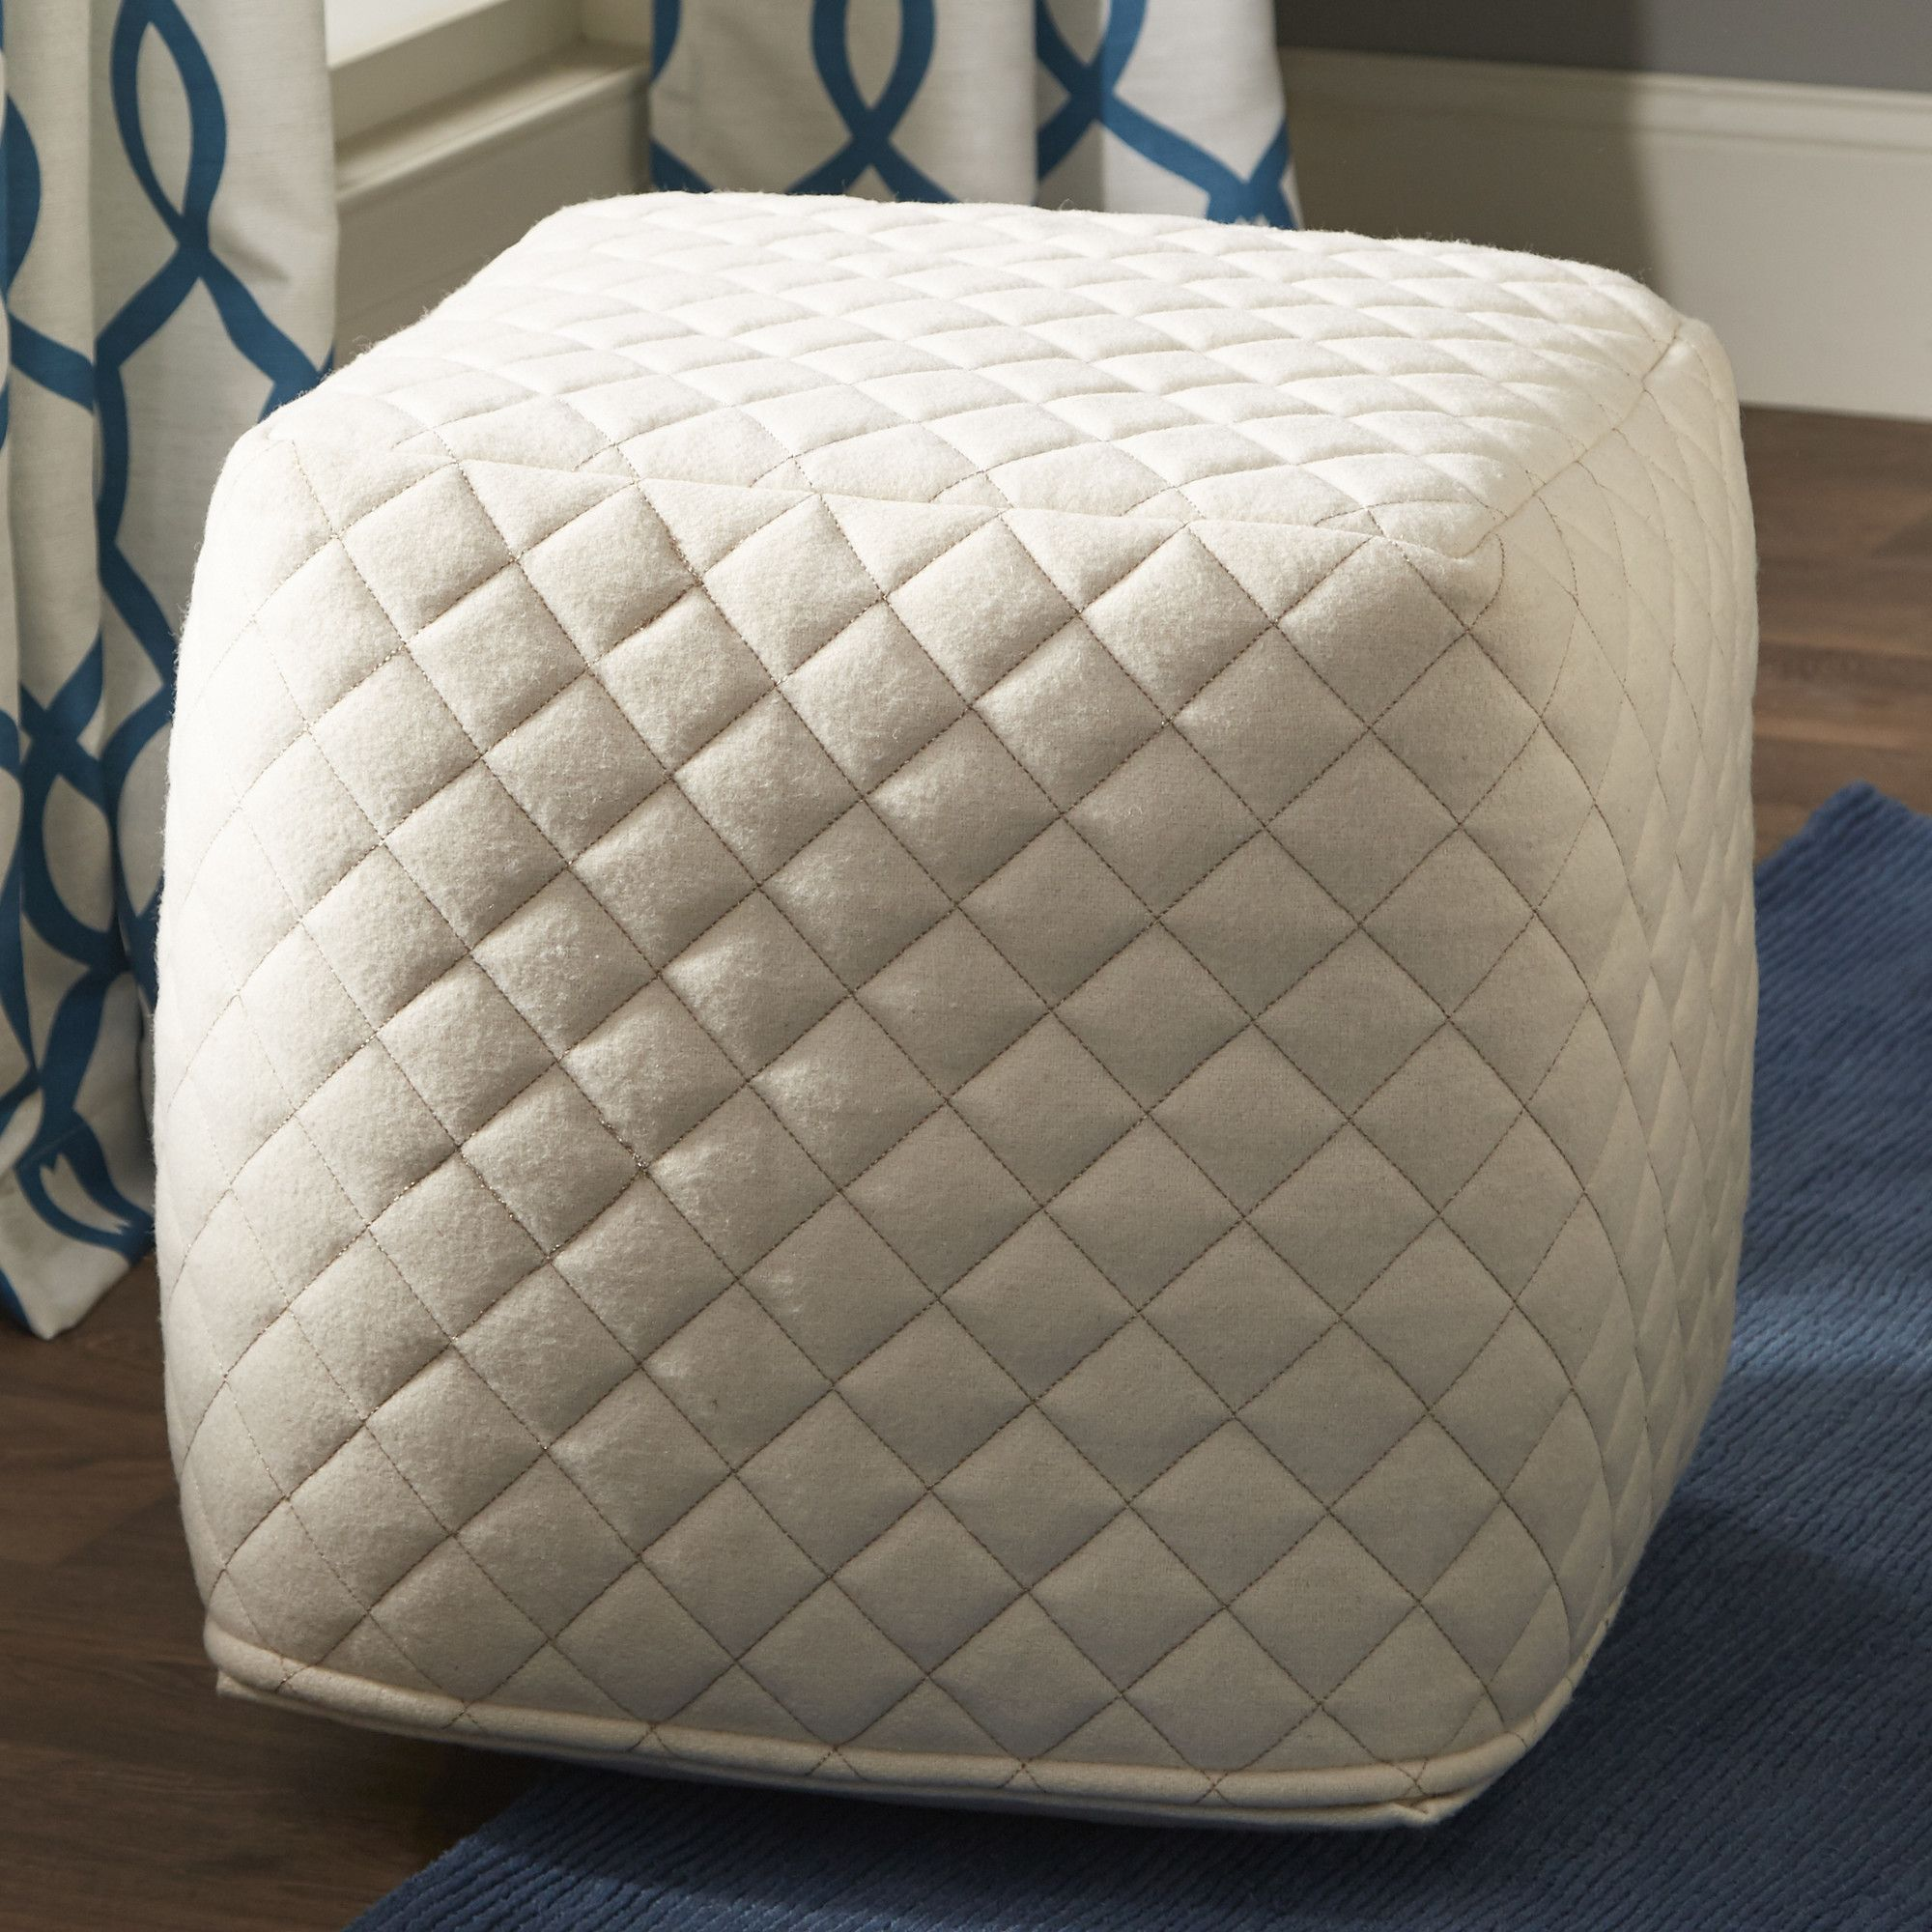 White Pouf Ottoman Ultranikki Chu Pouf Ottoman  Home & Decoration  Pinterest